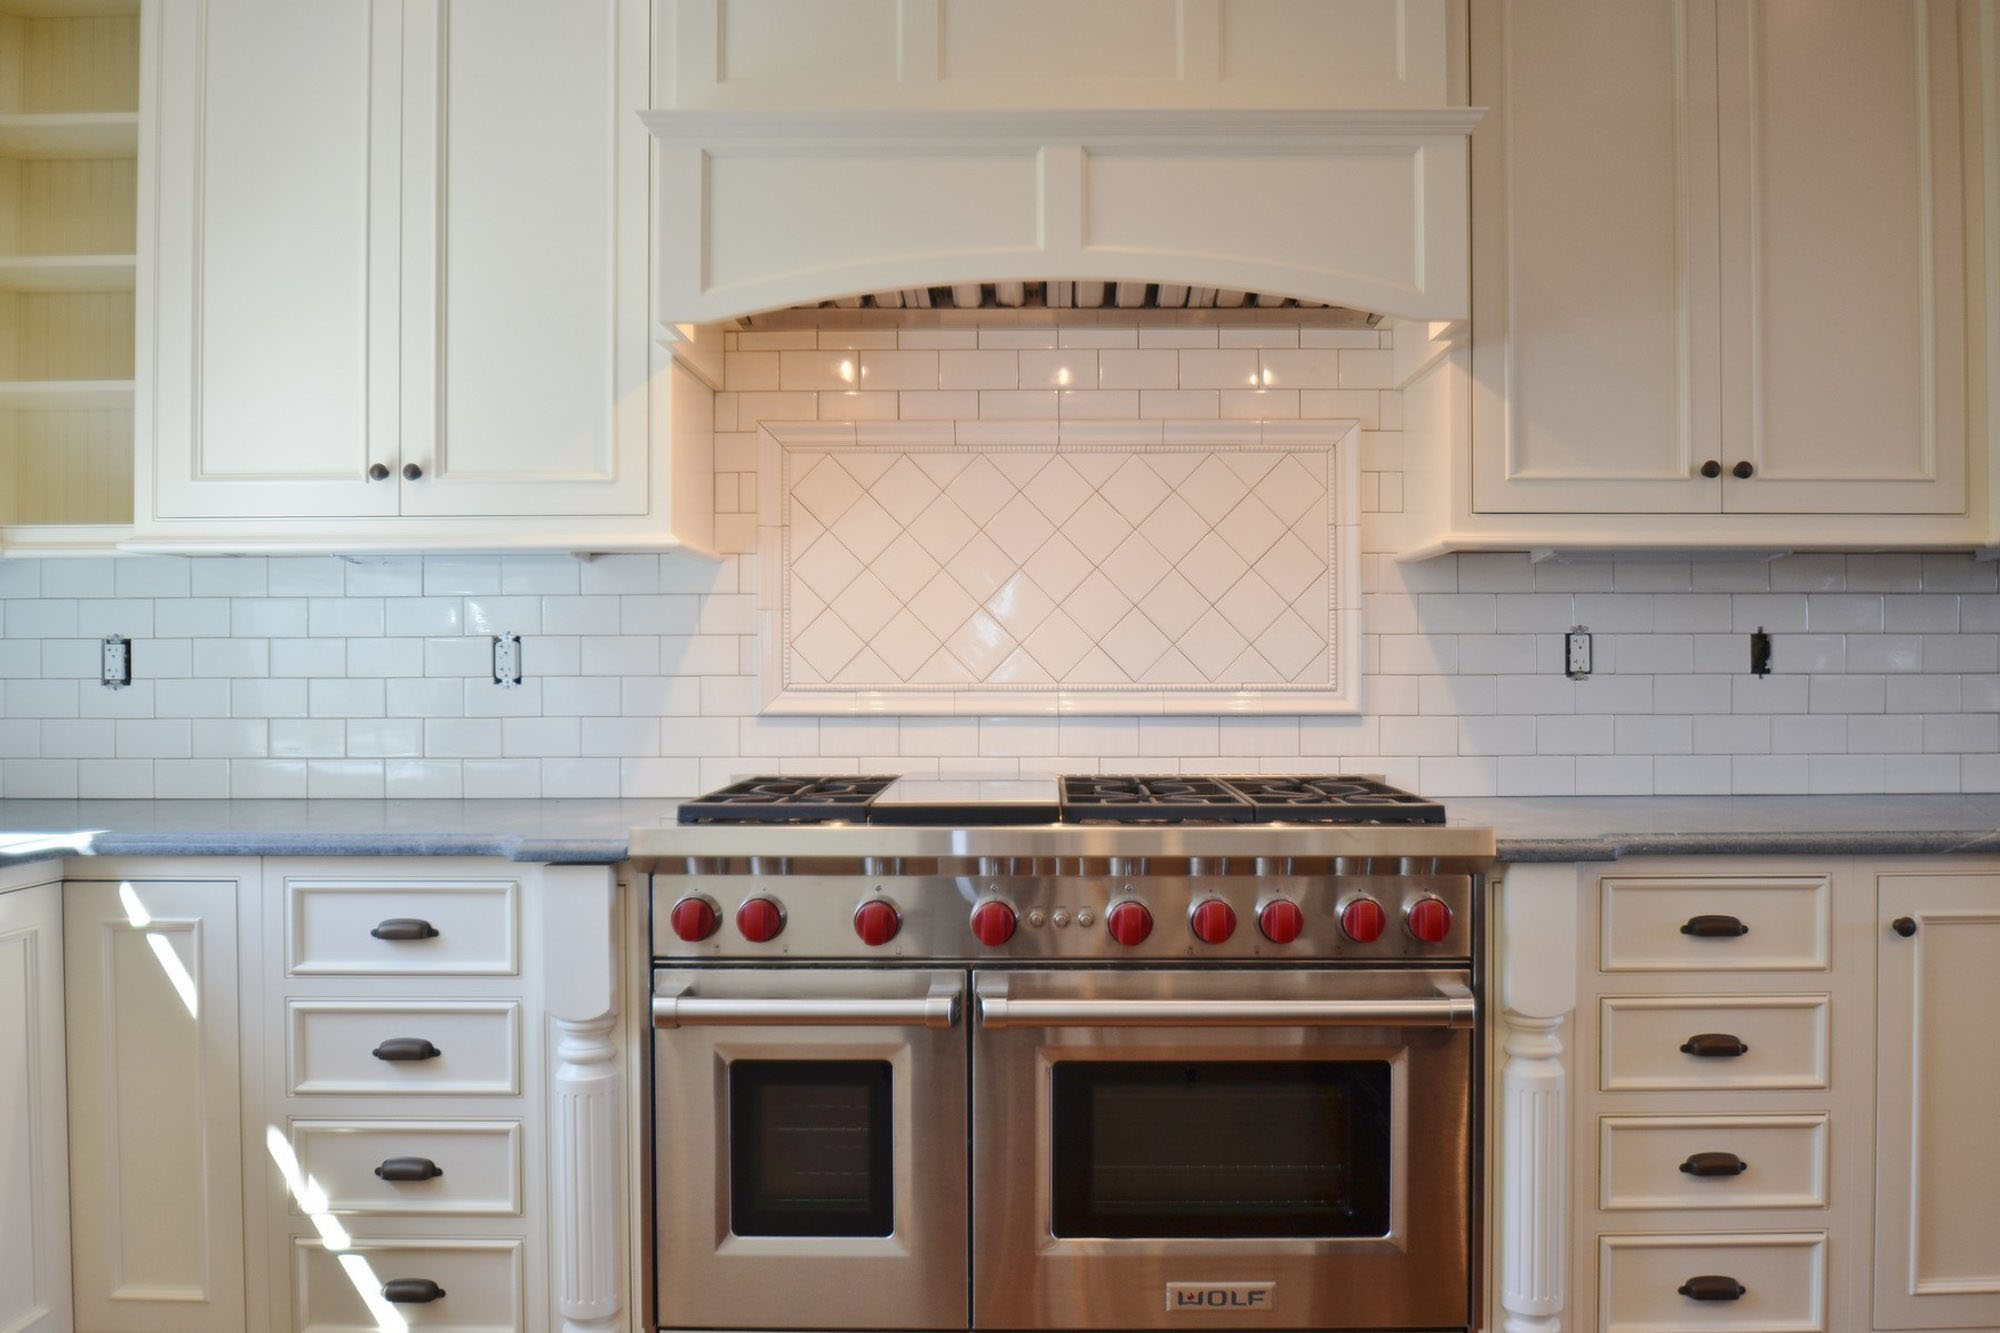 """Wolf 48"""" dual oven range with red knobs and 6 burners."""